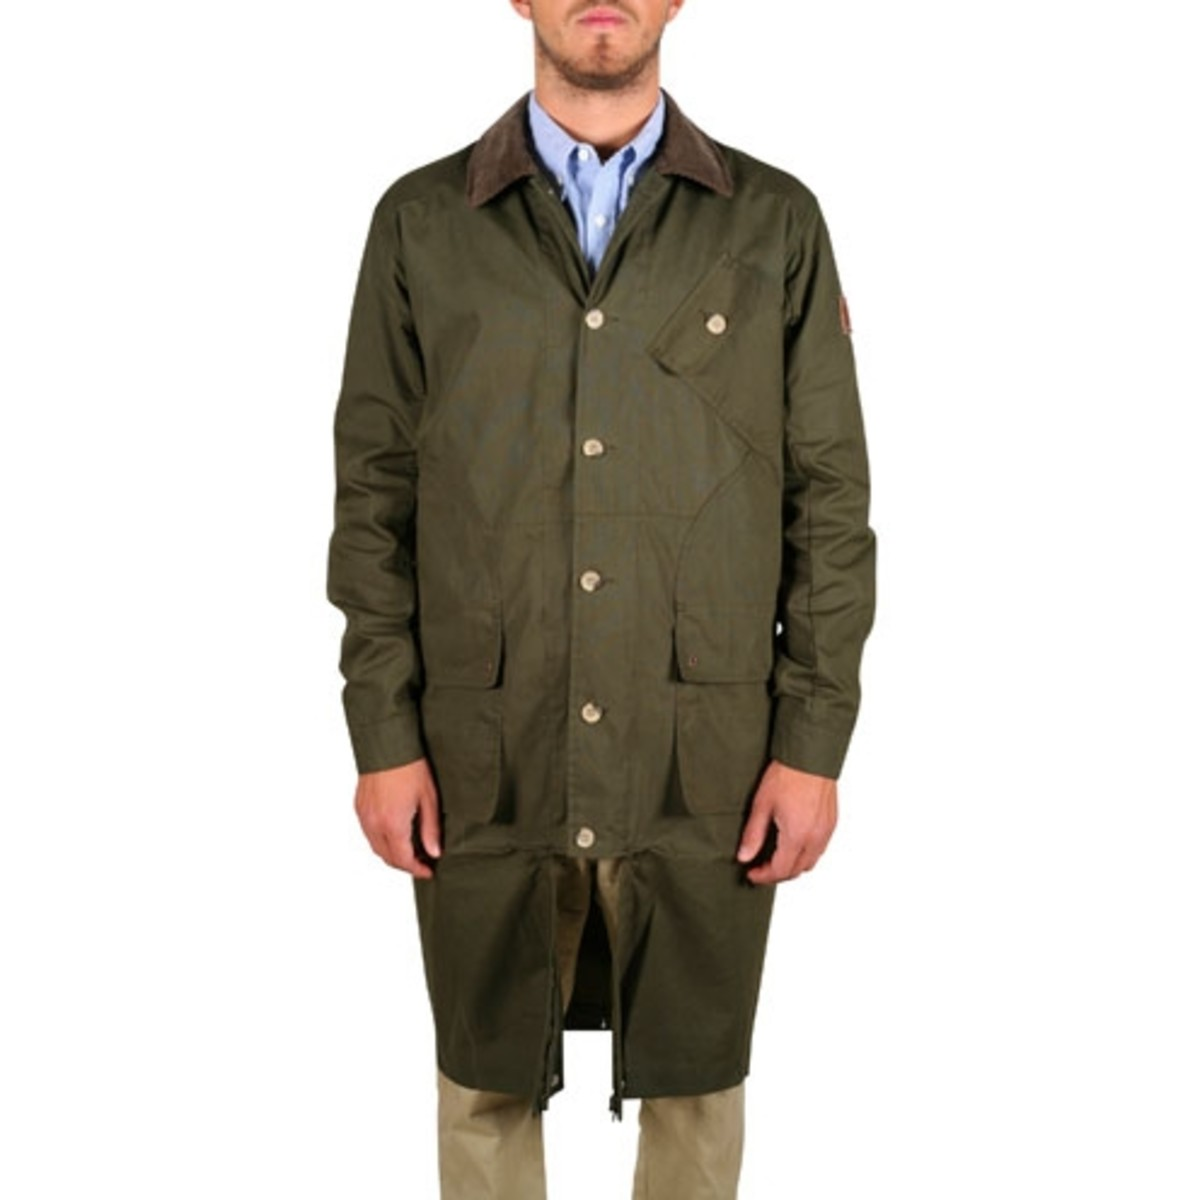 Penfield SS2011 Jackets 4